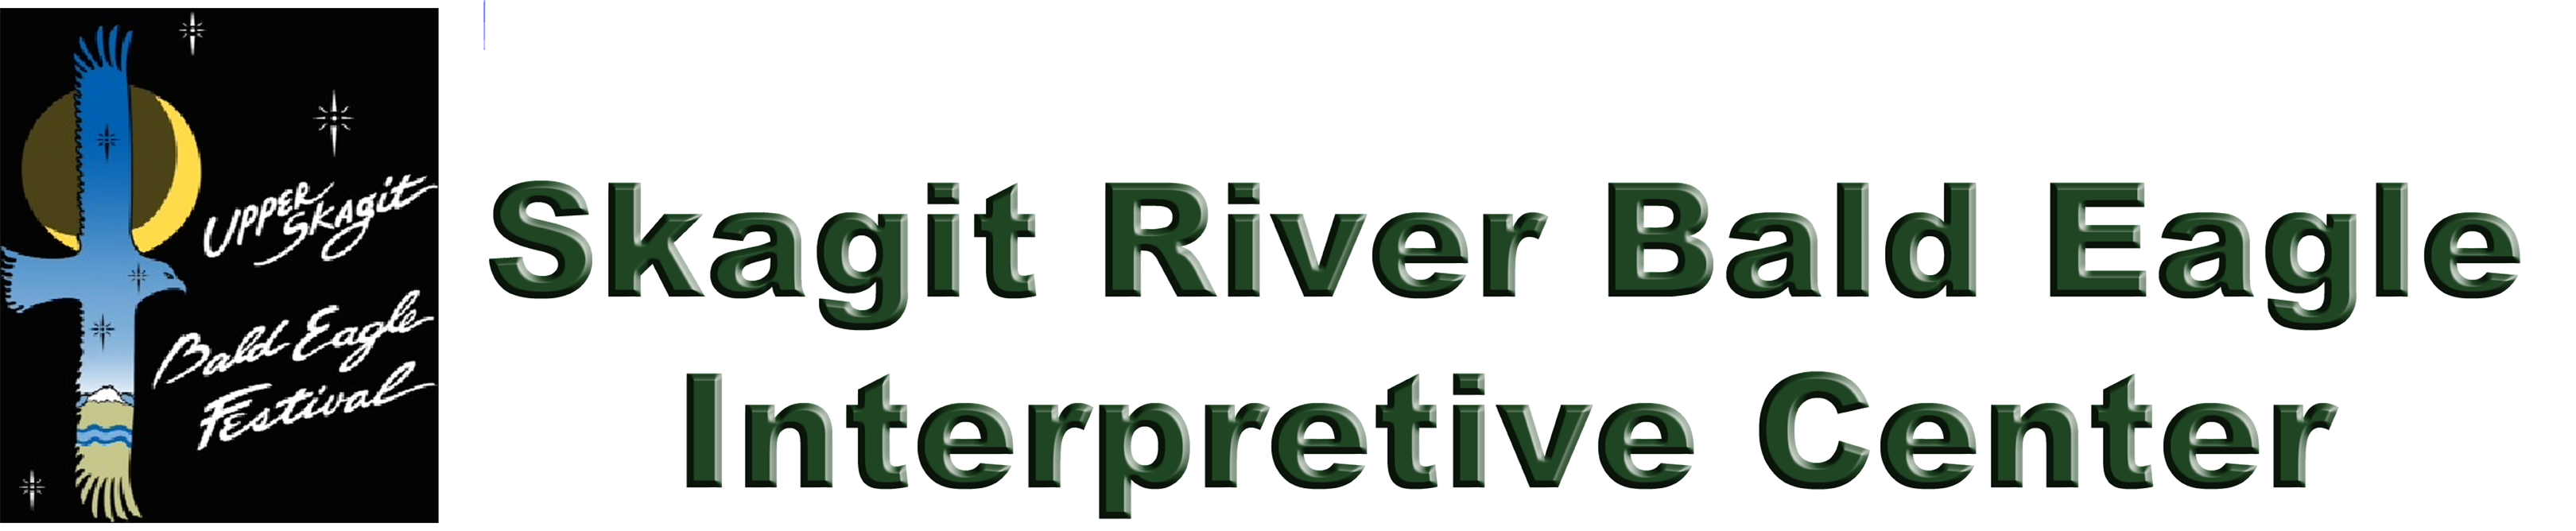 Skagit River Bald Eagle Interpretive Center Logo